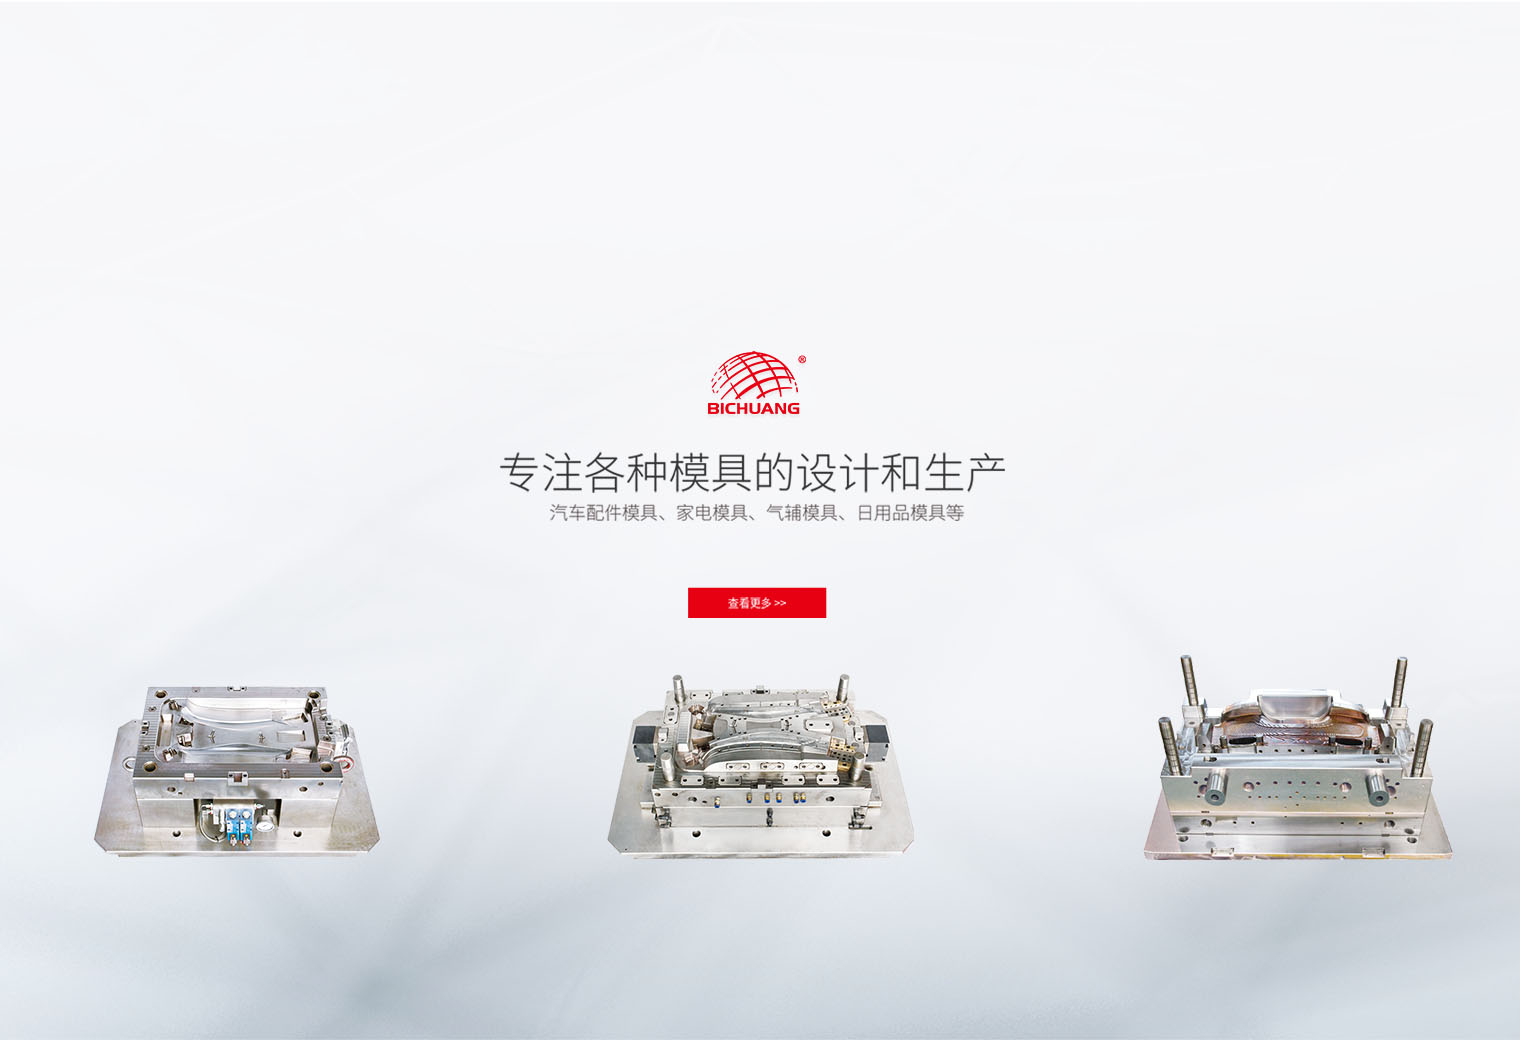 http://www.bcmould.cn/data/upload/202004/20200414093624_146.jpg